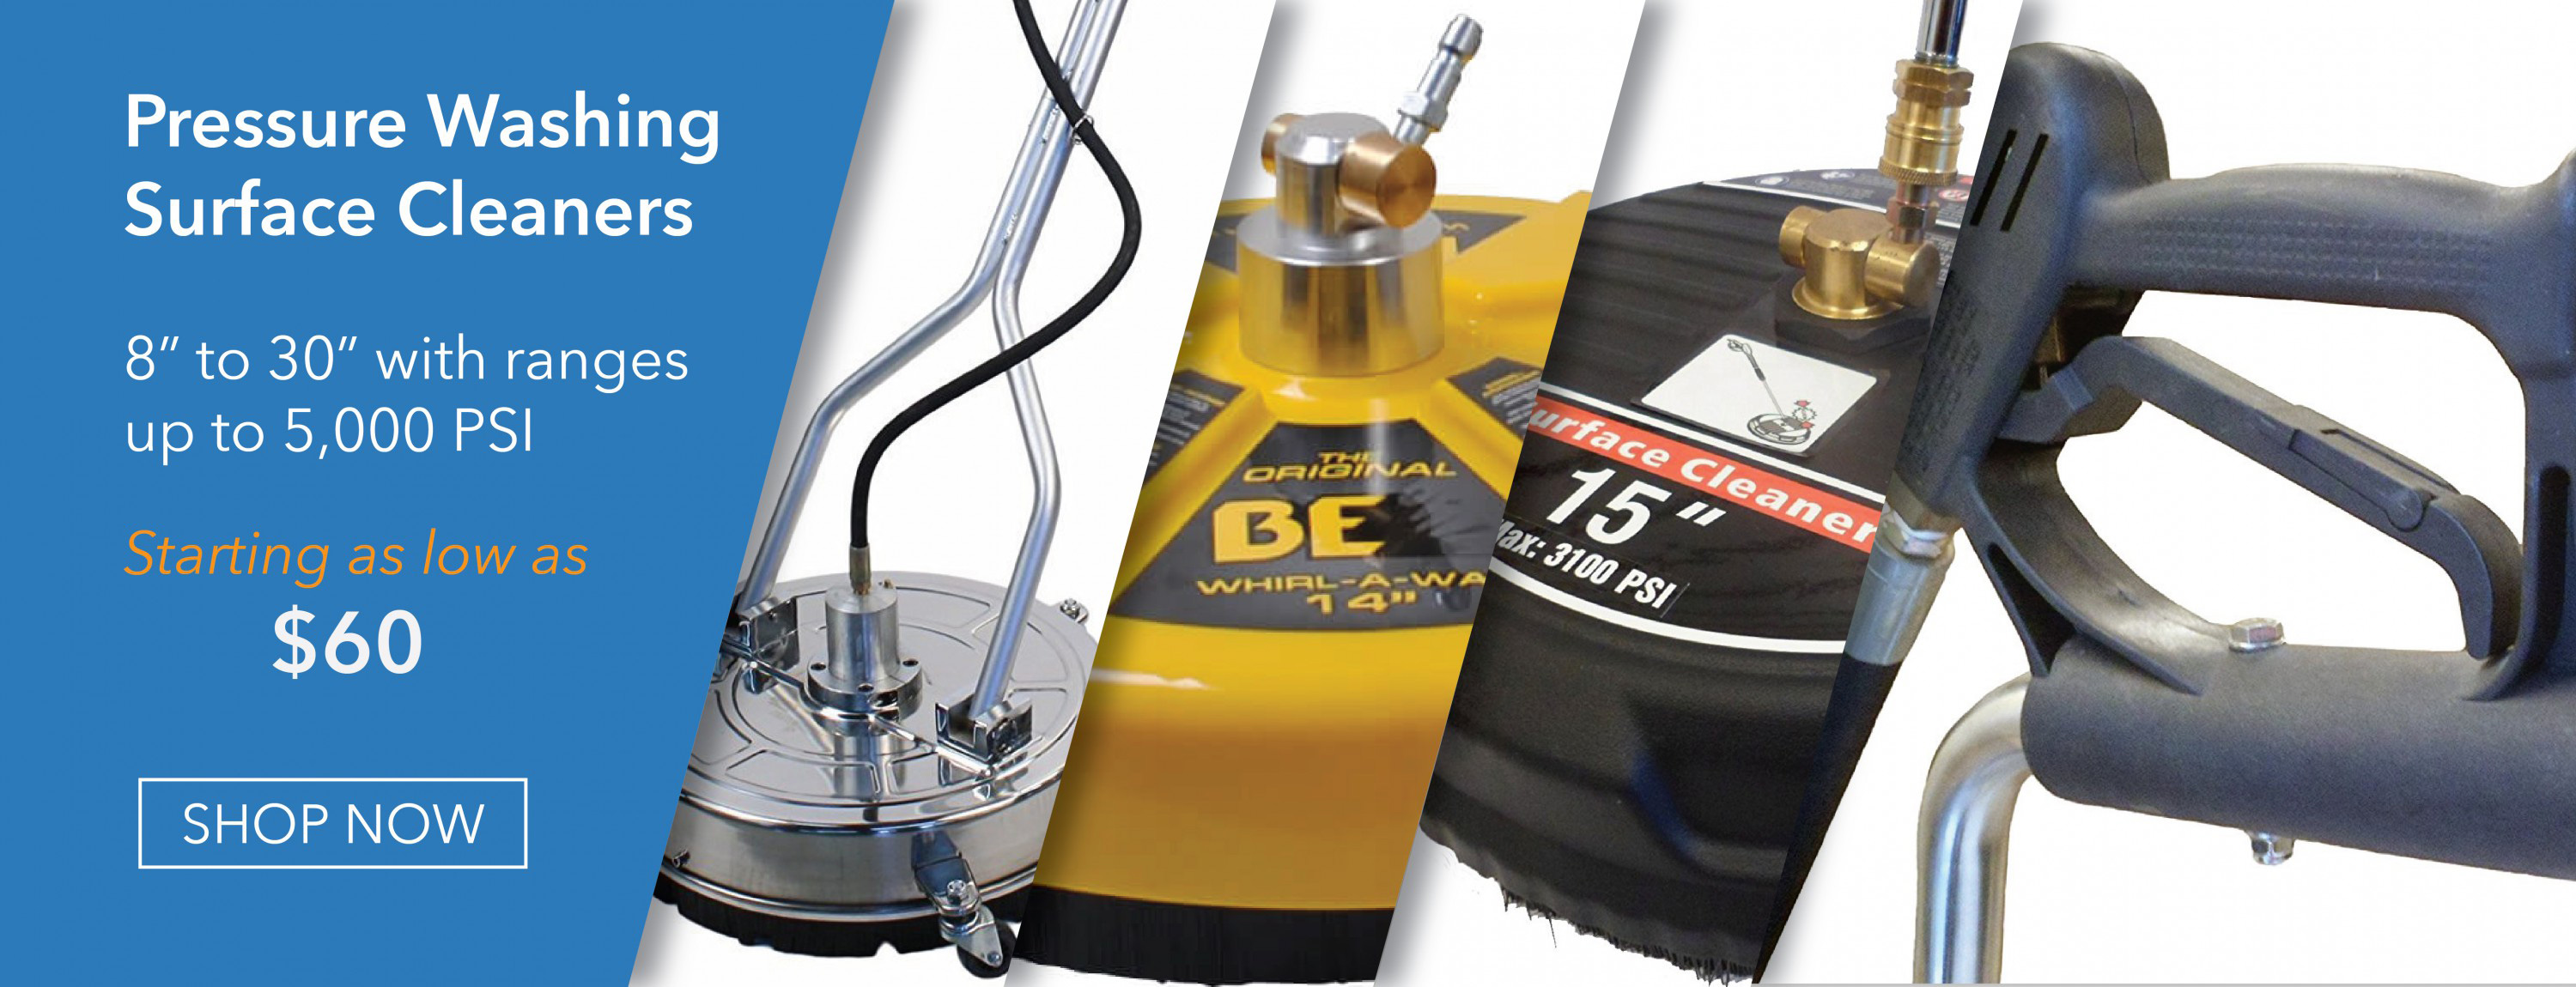 Pressure Washers, Power Washer, Water Blasters, Pressure Cleaner